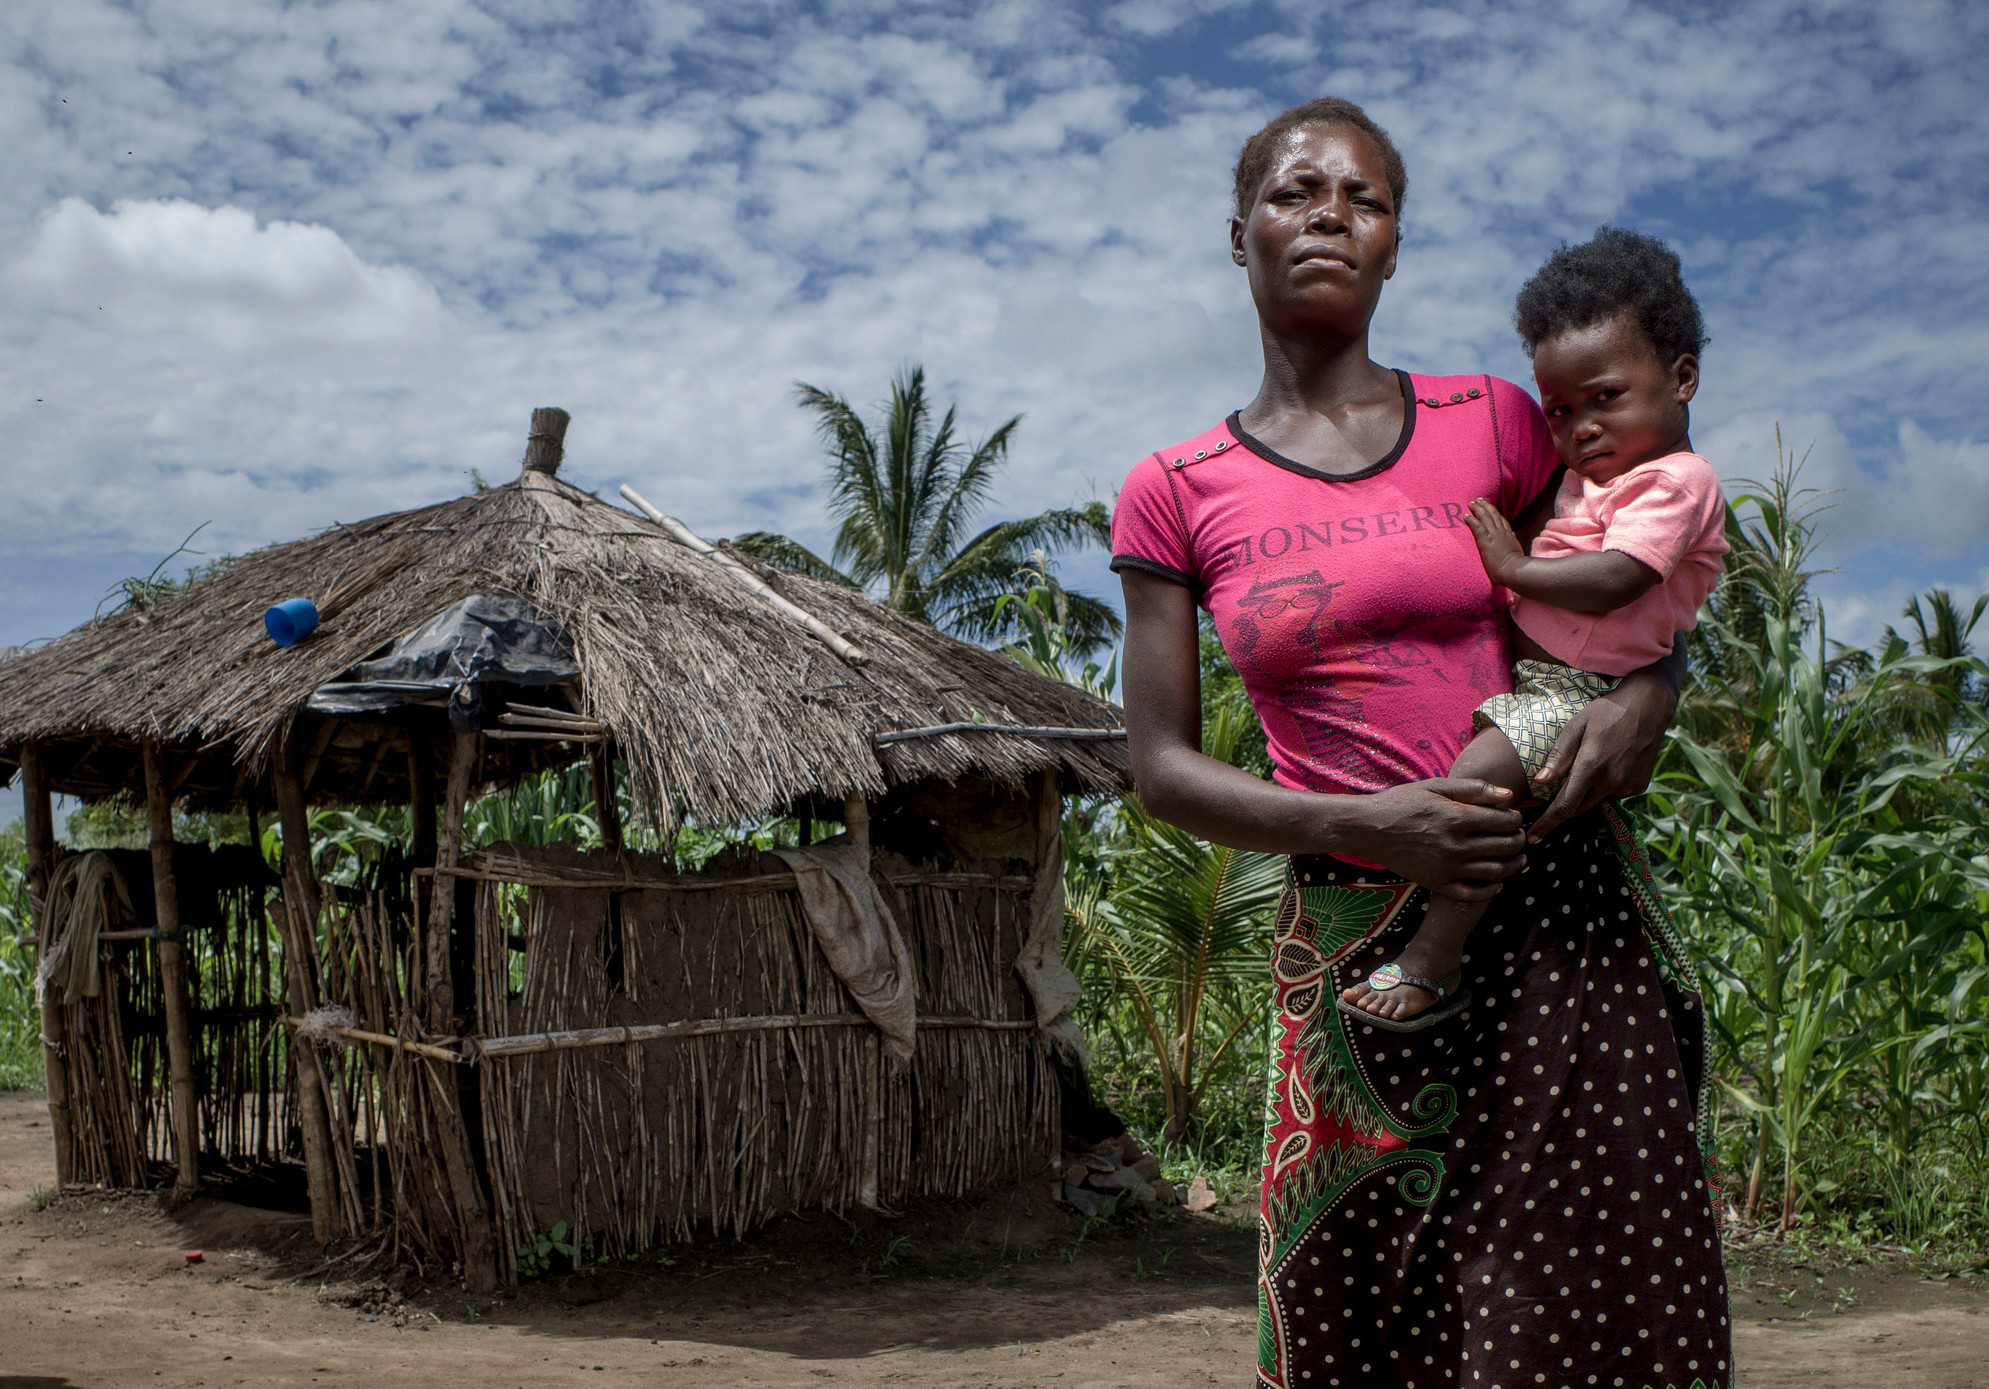 A woman holds her daughter in front of a wooden hut.